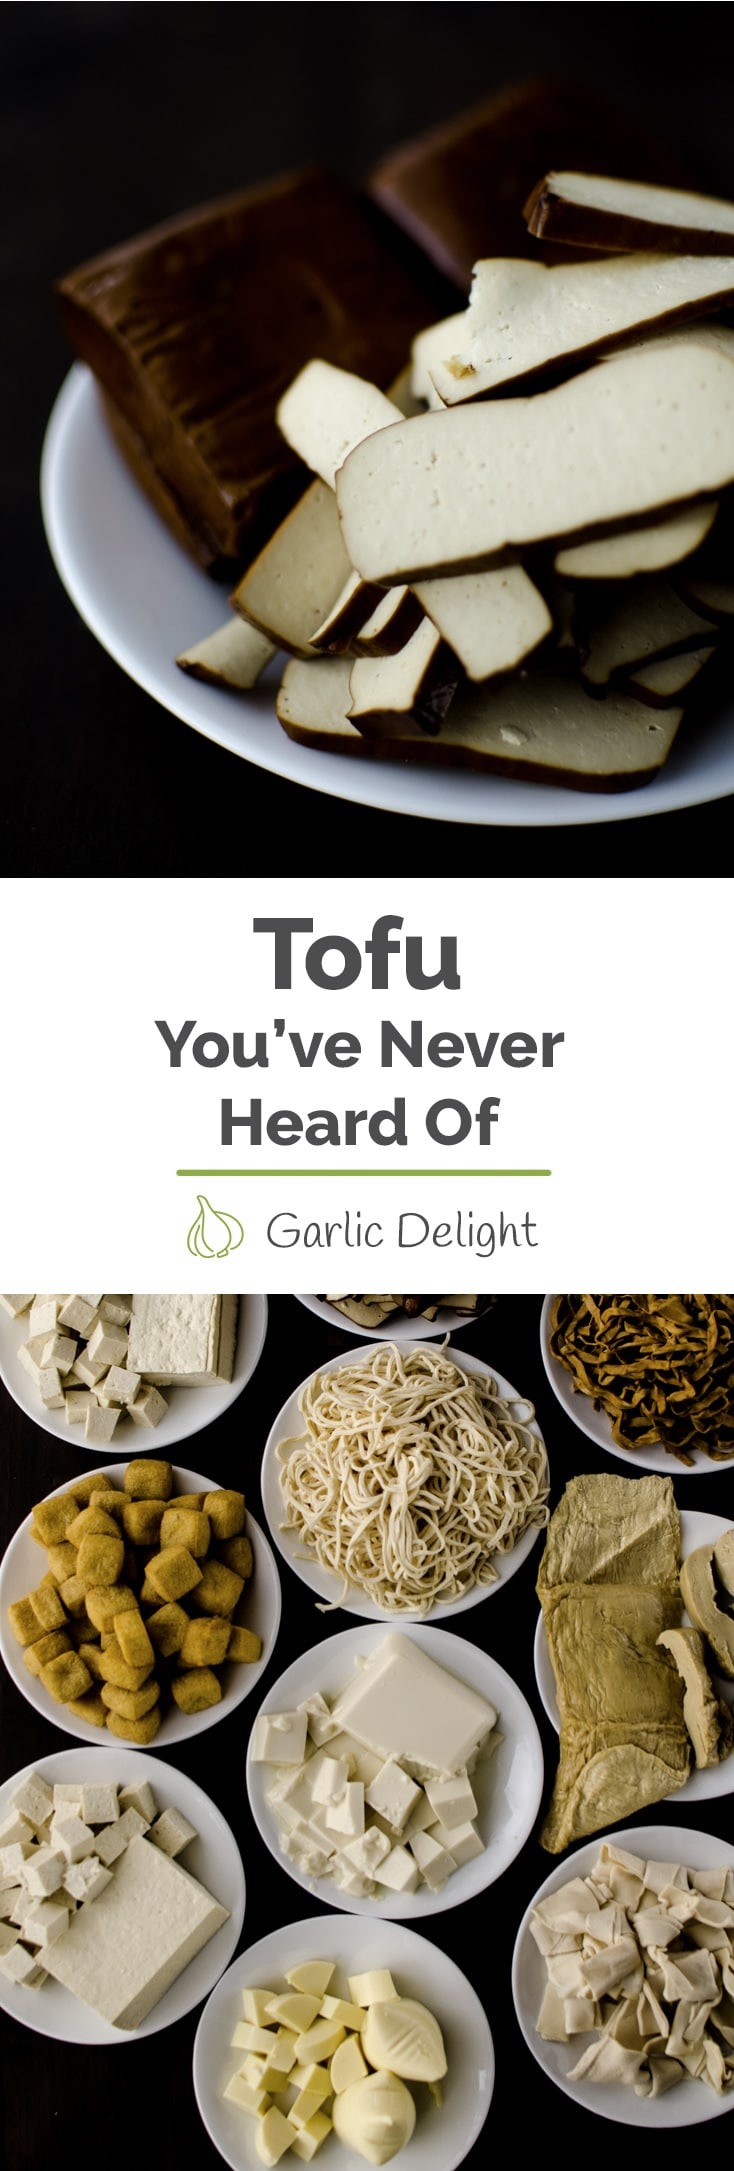 9different types of tofu you'veprobably never heard of and tips on how to enjoy them, including silken tofu, tofu sponges, and tofu noodles. Stories from garlicdelight.com.